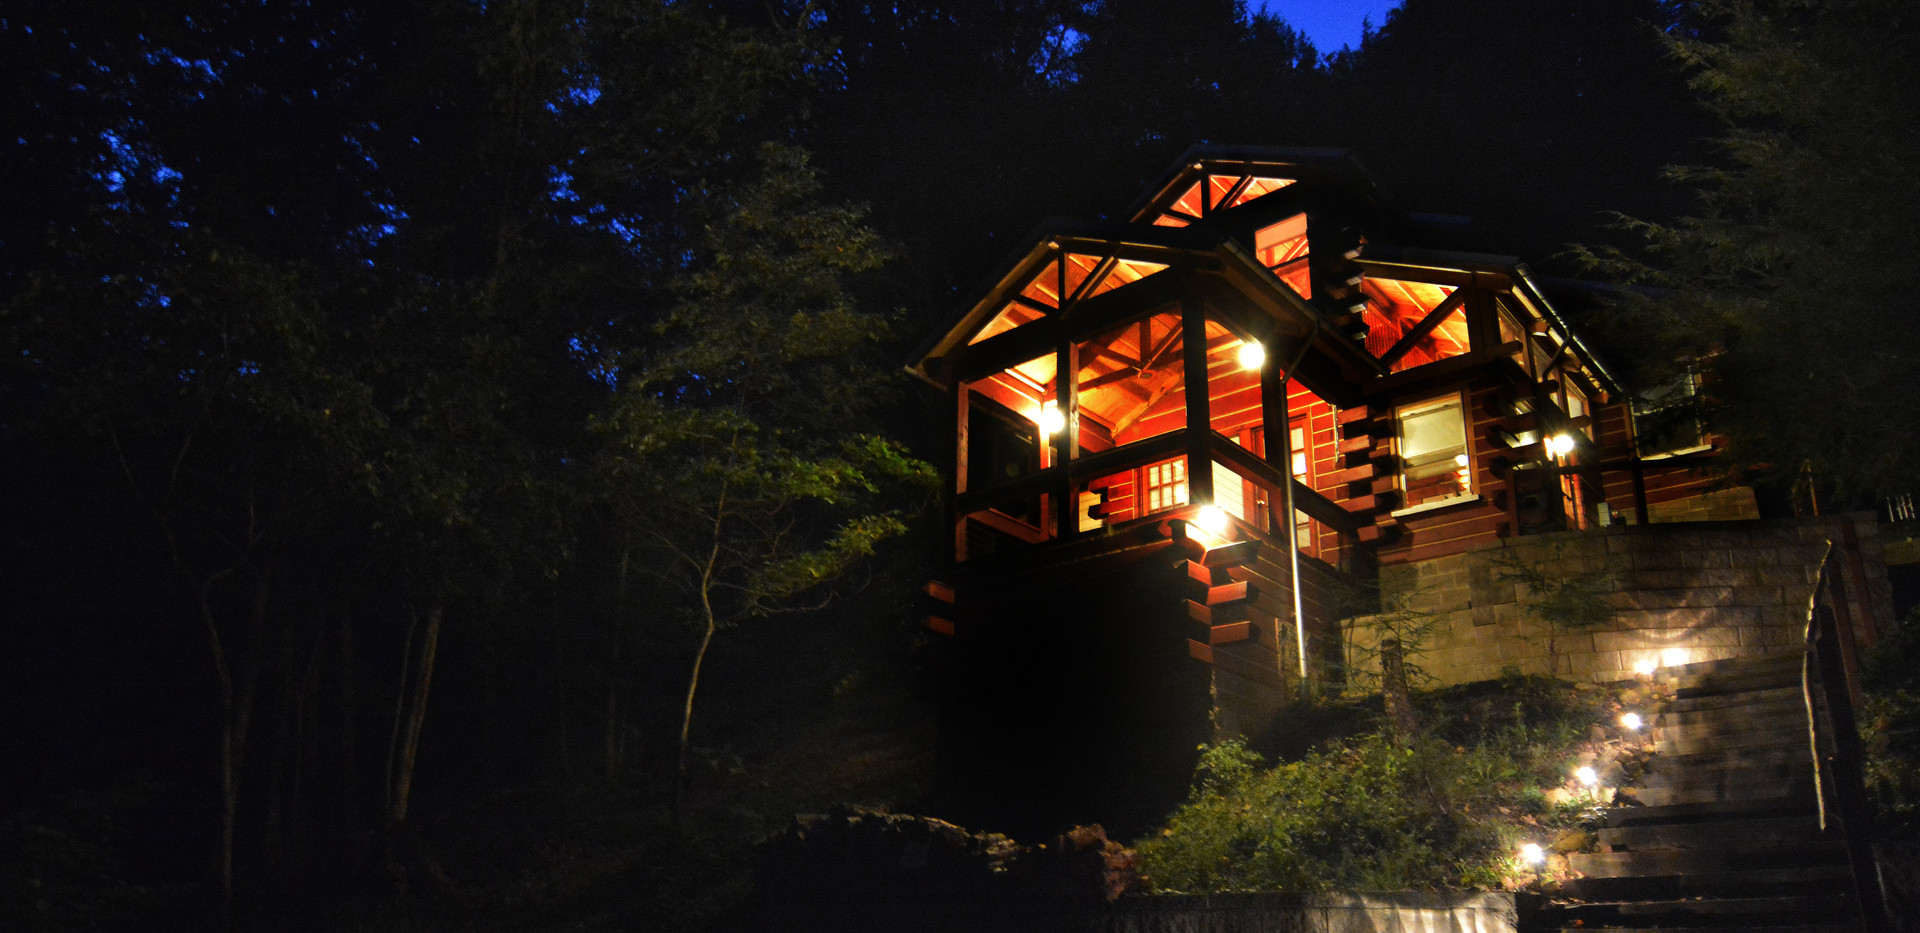 The cabin at dusk.